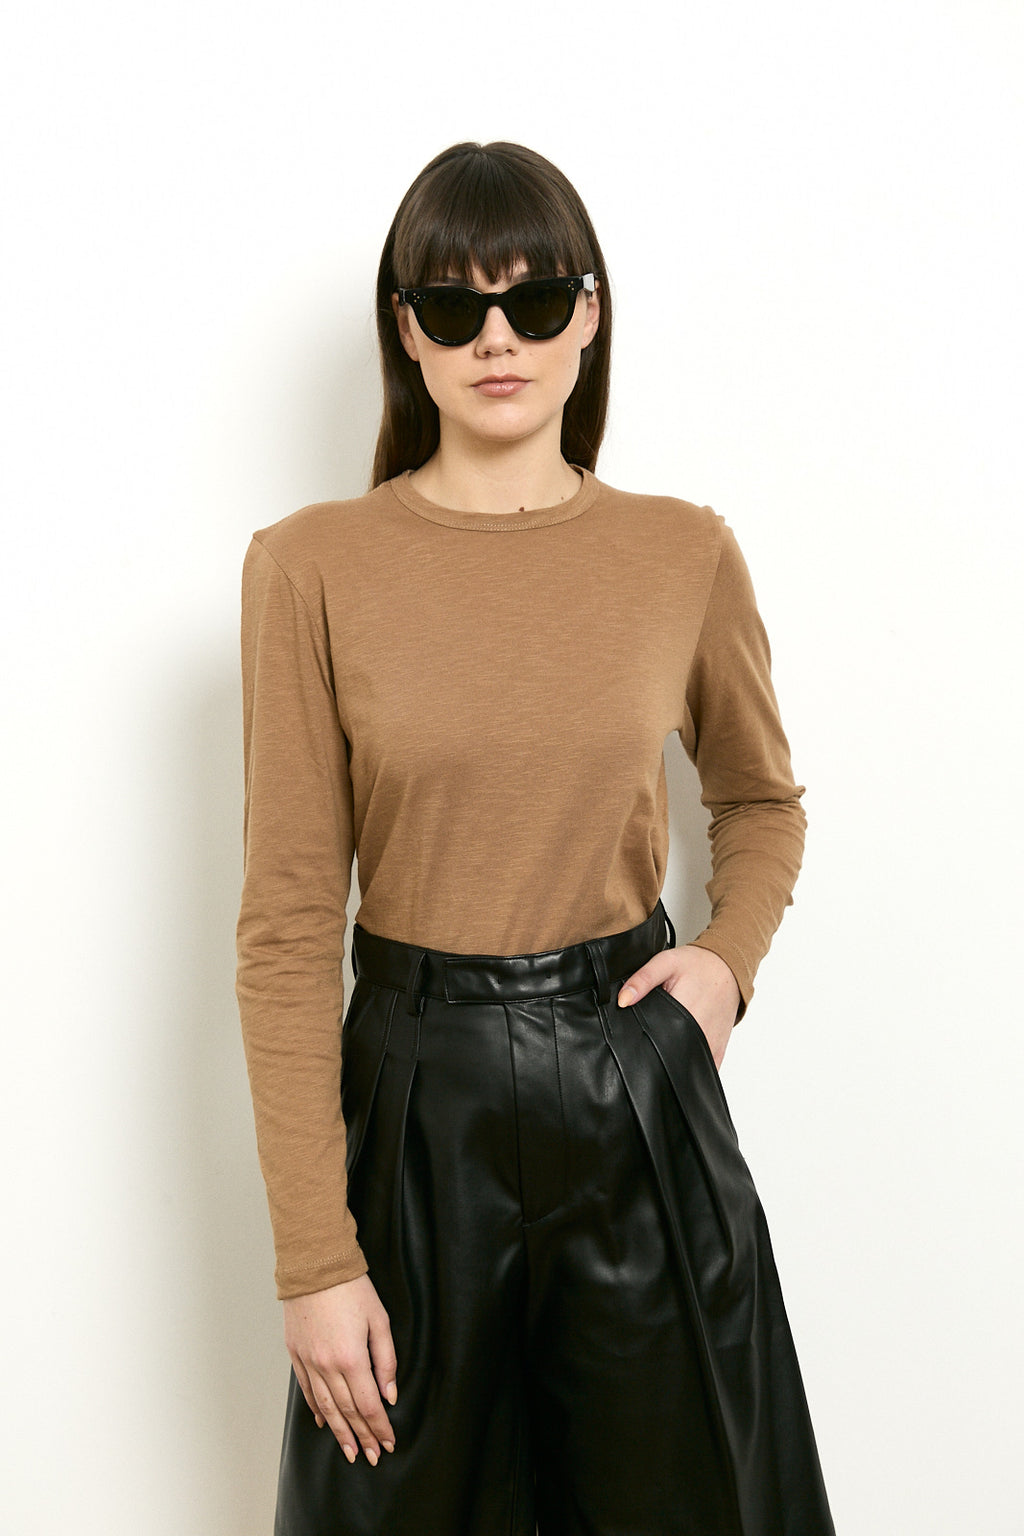 Turtleneck blouse with a belt